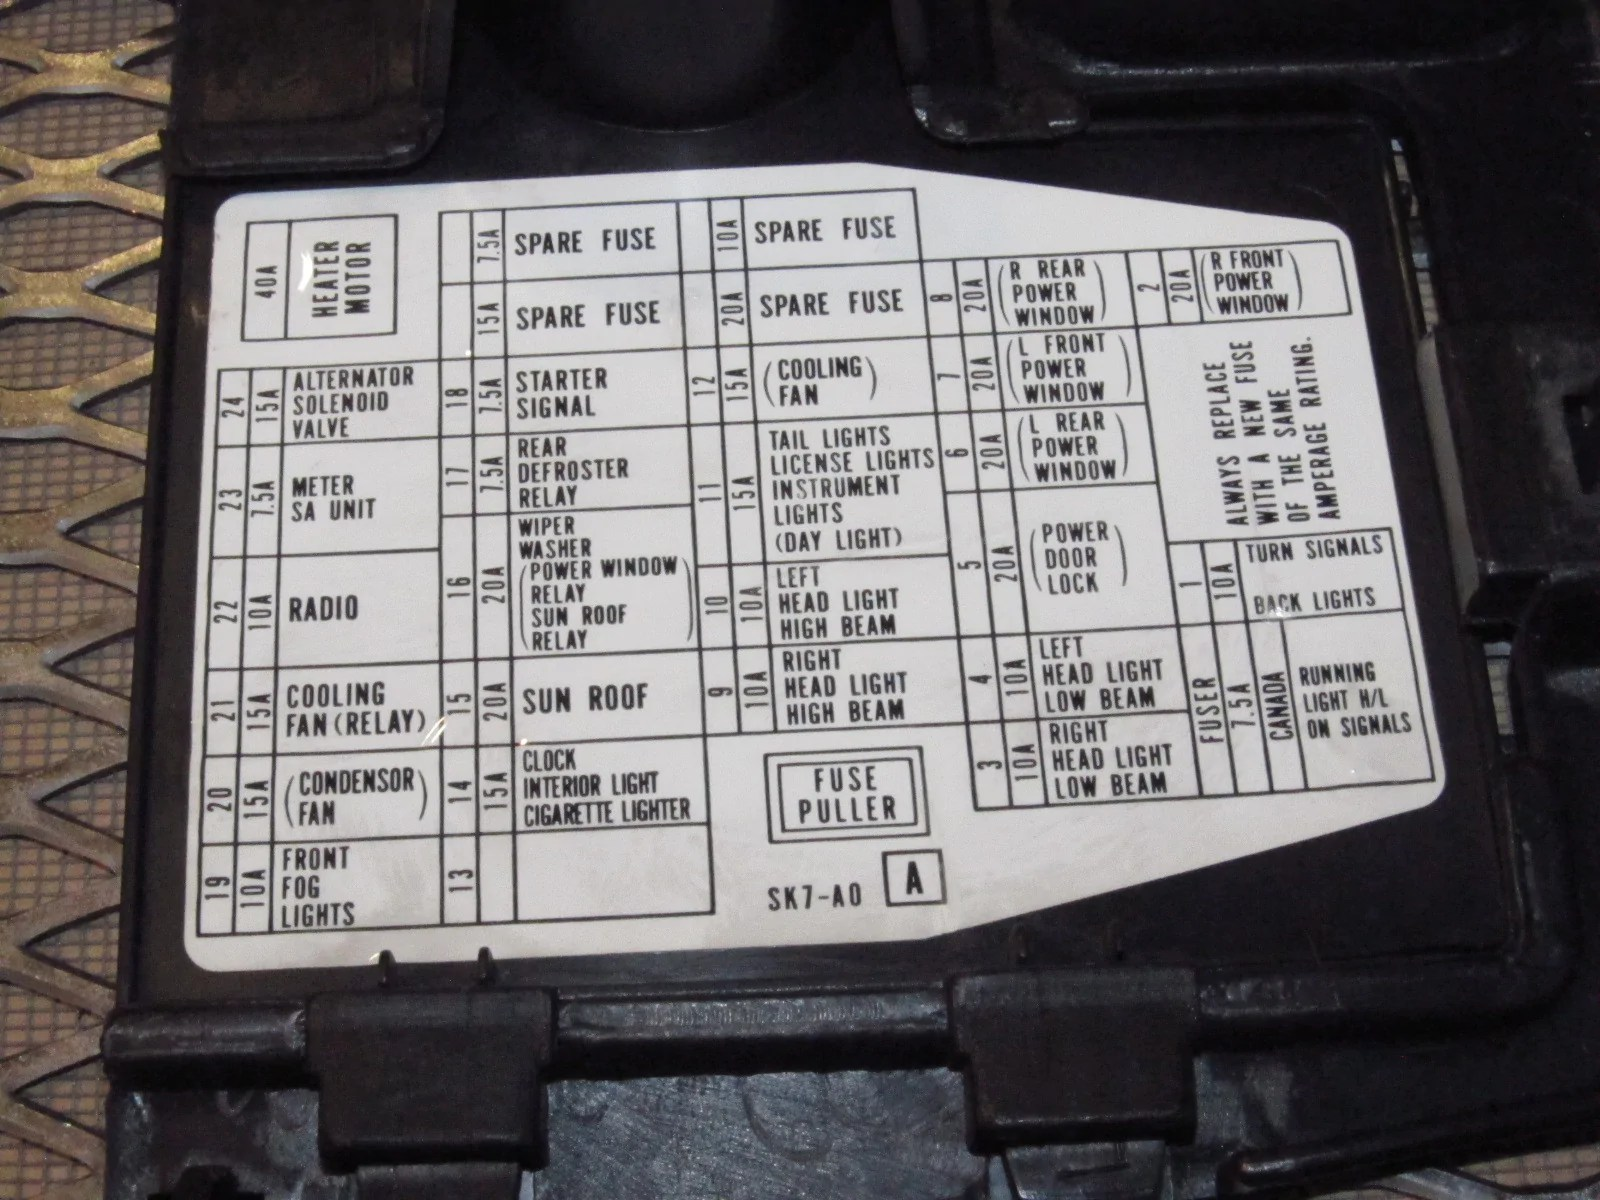 91 integra fuse box wiring diagram third level 1995 z71 fuse box diagram 90 integra fuse box diagram [ 1600 x 1200 Pixel ]